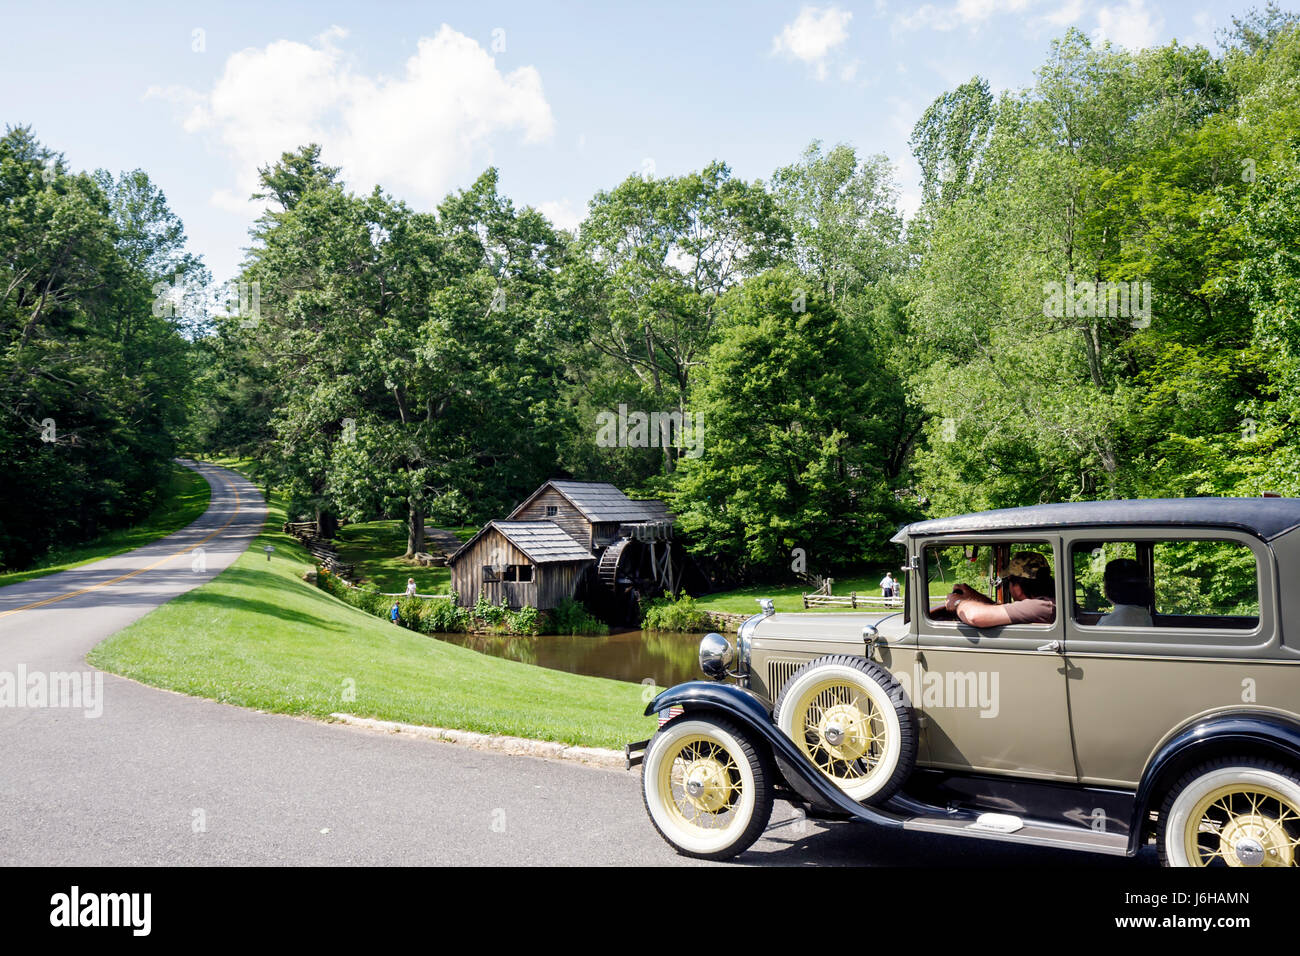 Virginia Appalachian Mountains Blue Ridge Parkway All-American Road National Scenic Byway Mabry Mill historic gristmill - Stock Image